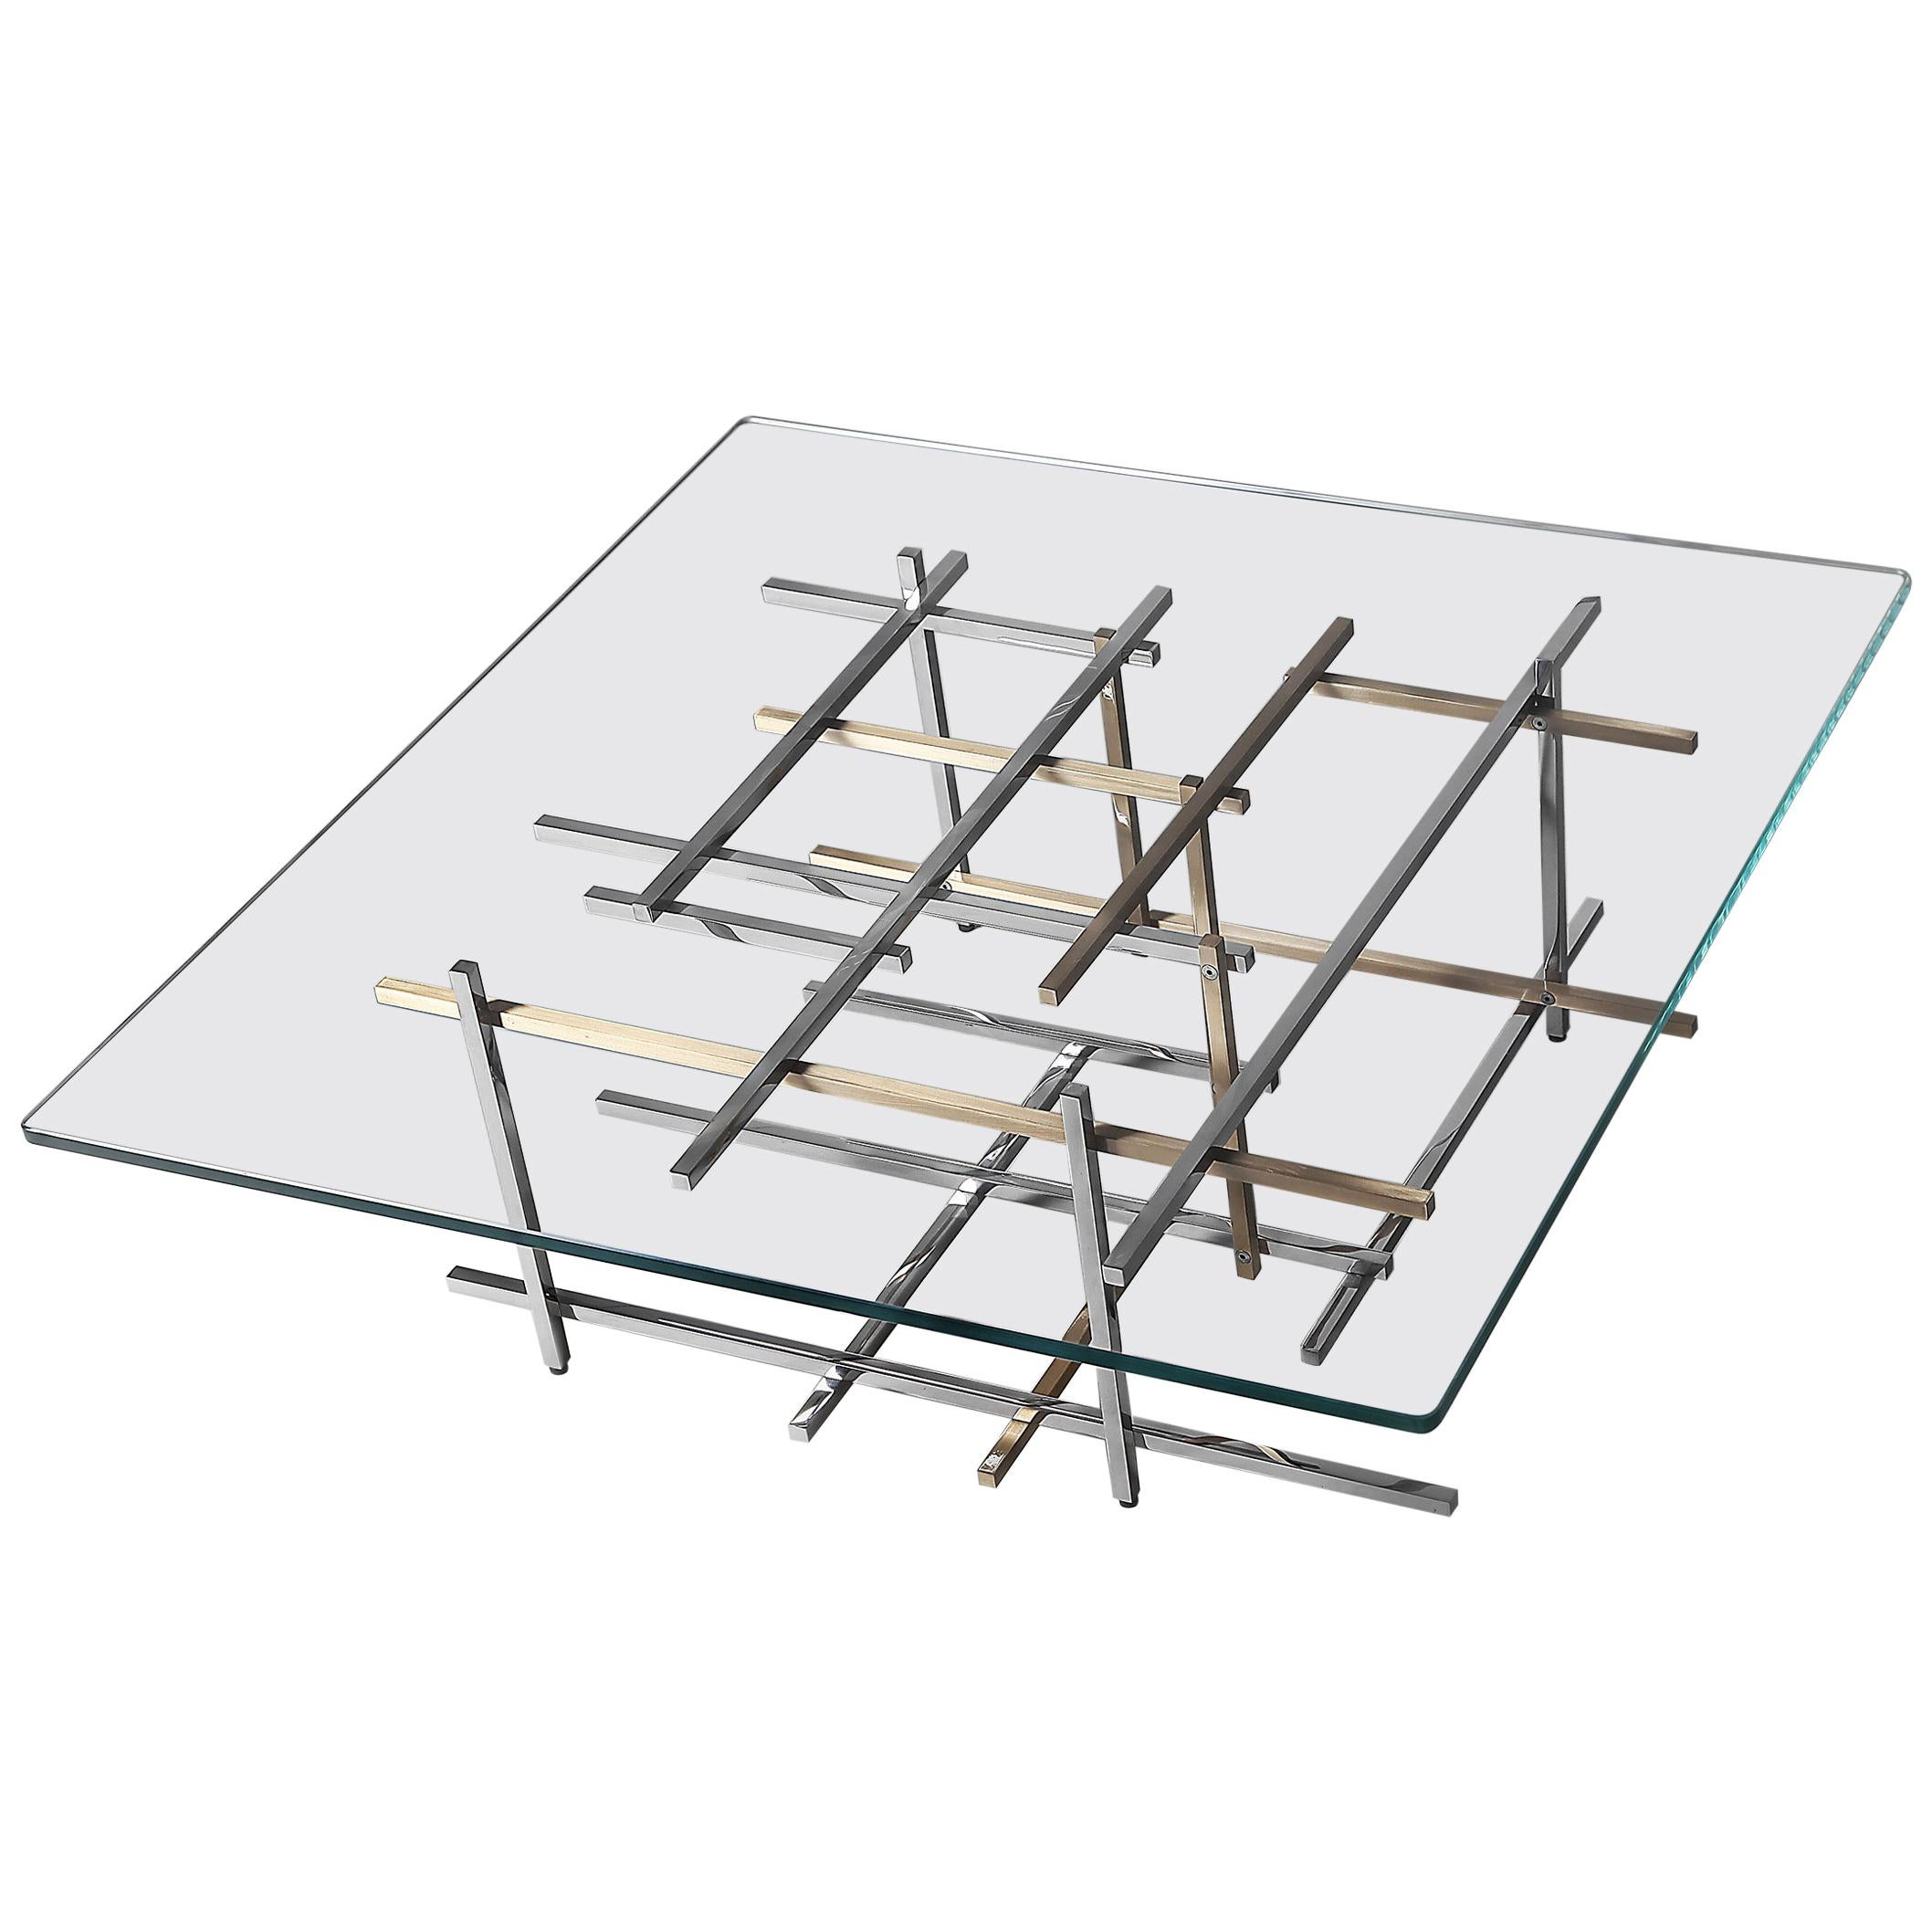 Mikado, Coffee Table in Hand Polished Stainless Steel, Brushed Brass and Glass